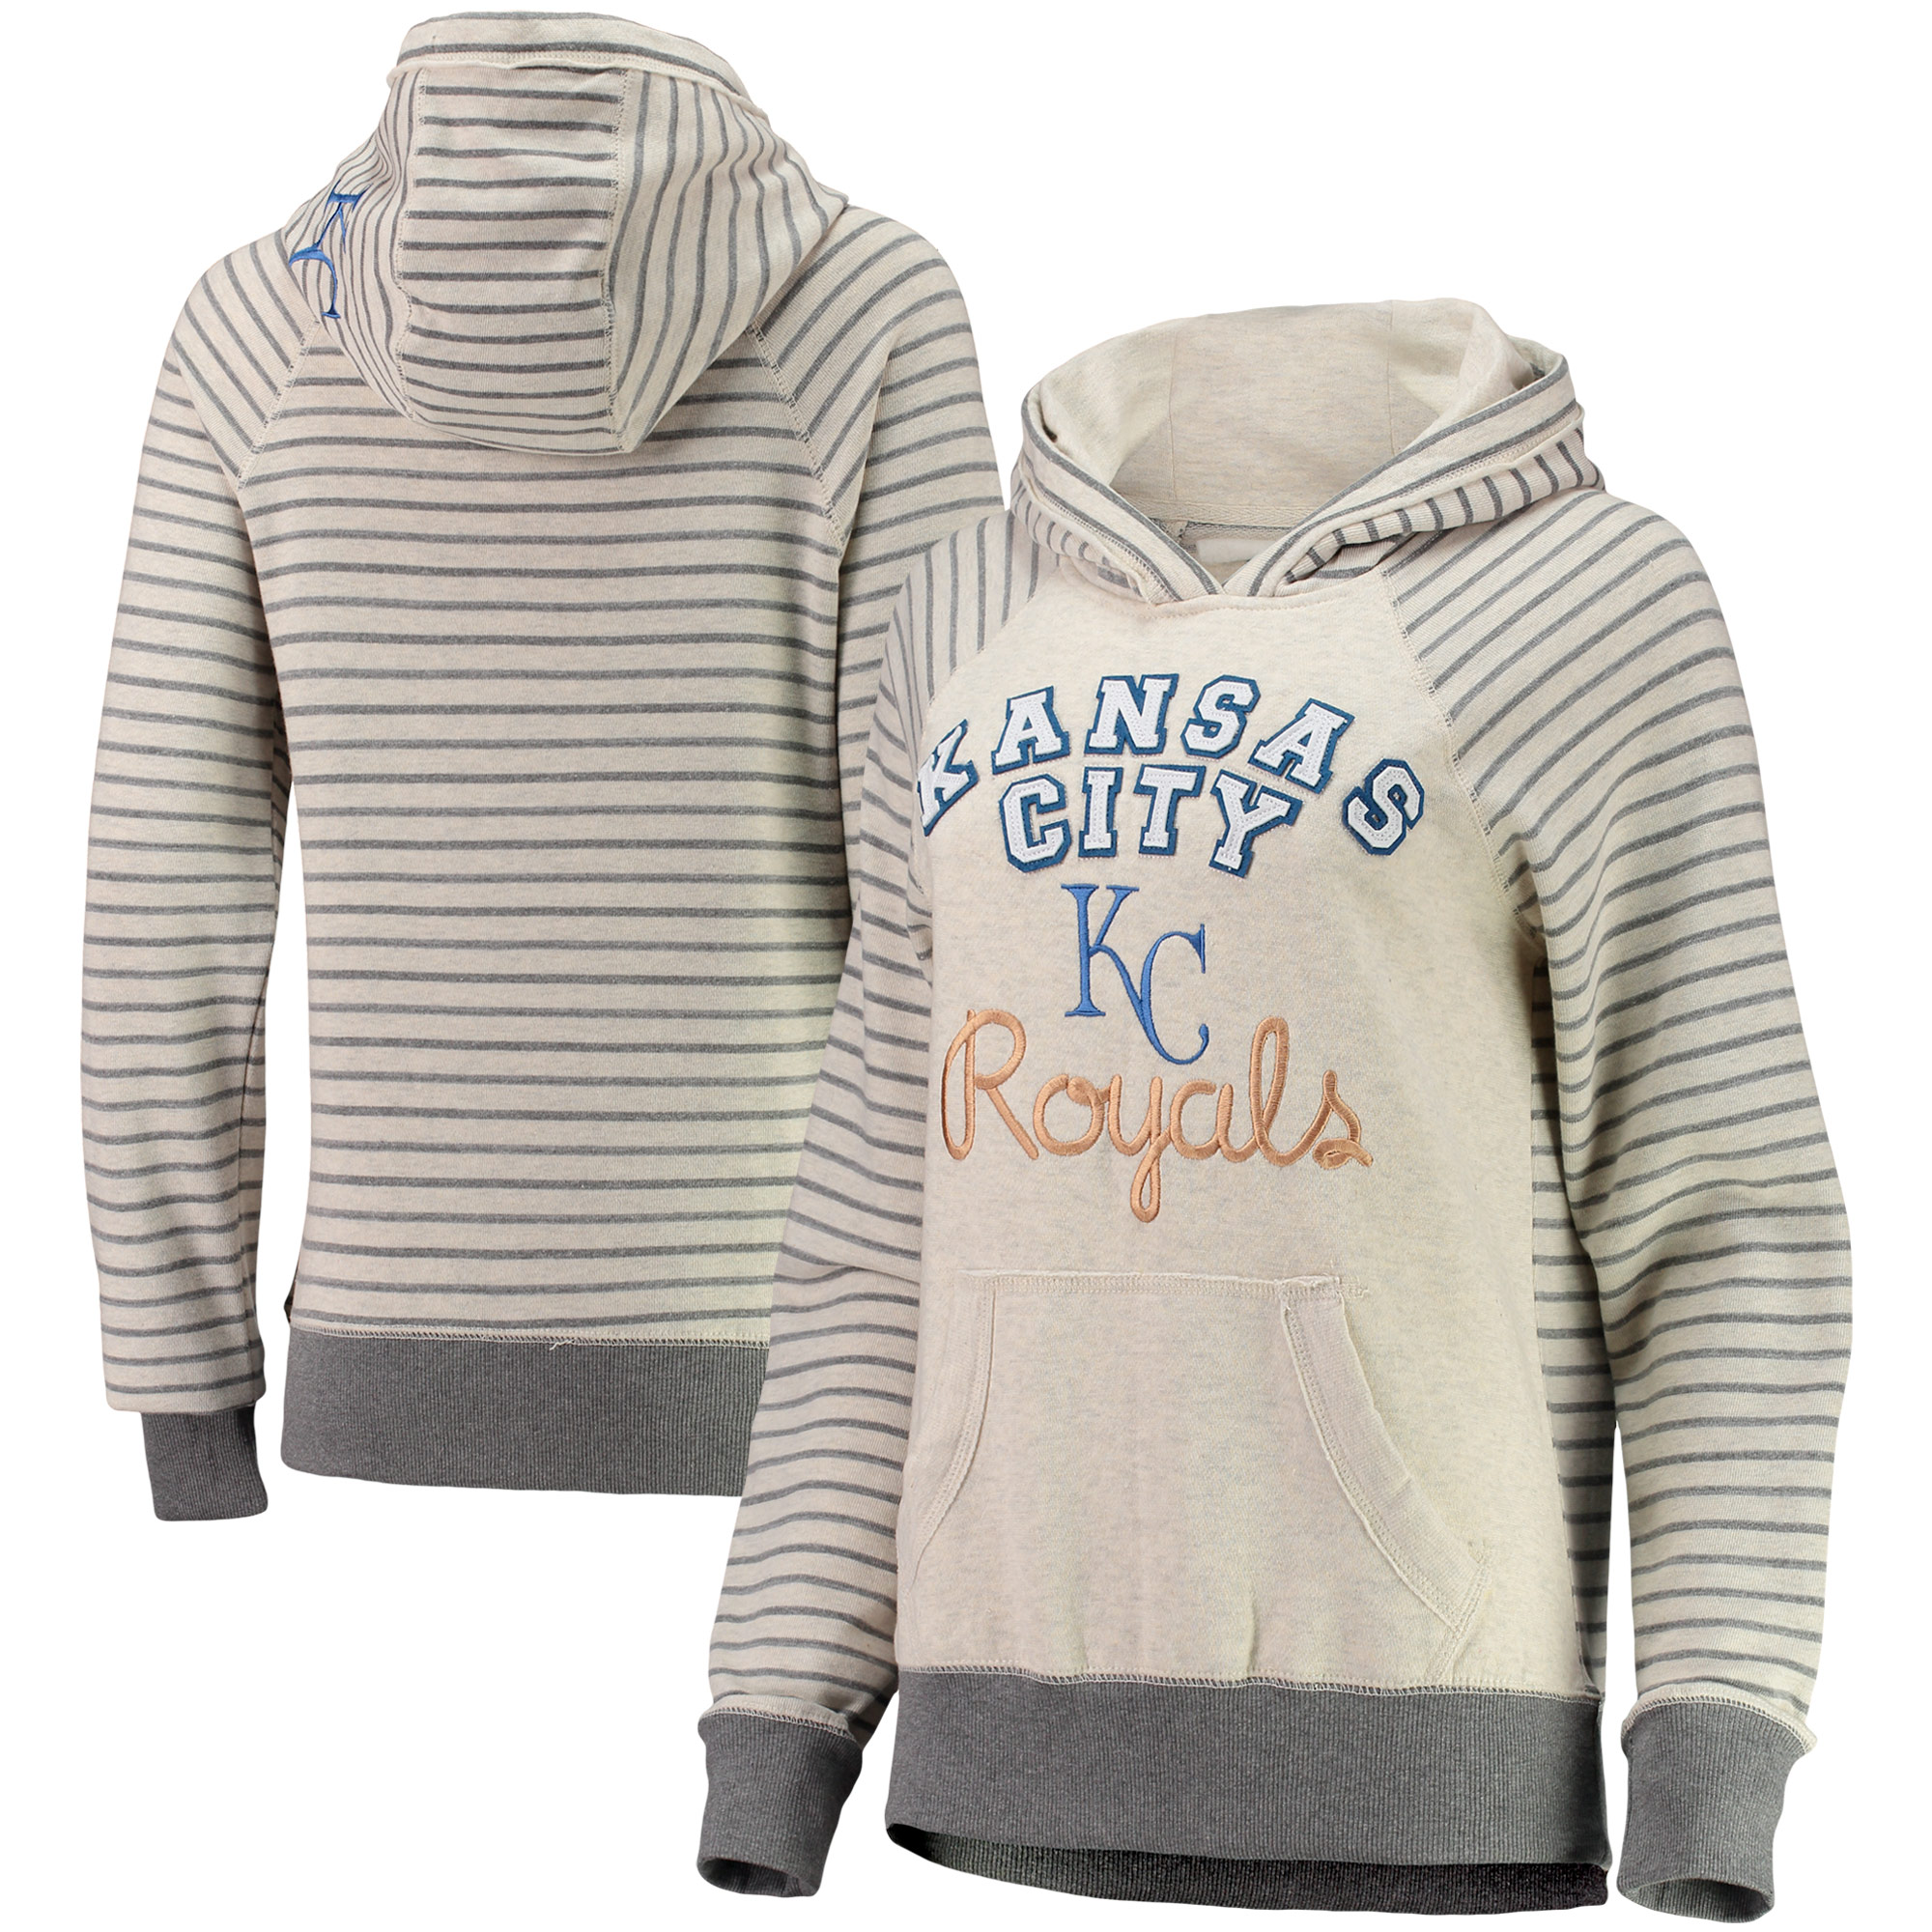 Kansas City Royals Soft as a Grape Women's Ultra Plush Striped Sleeve Pullover Hoodie - Cream/Gray